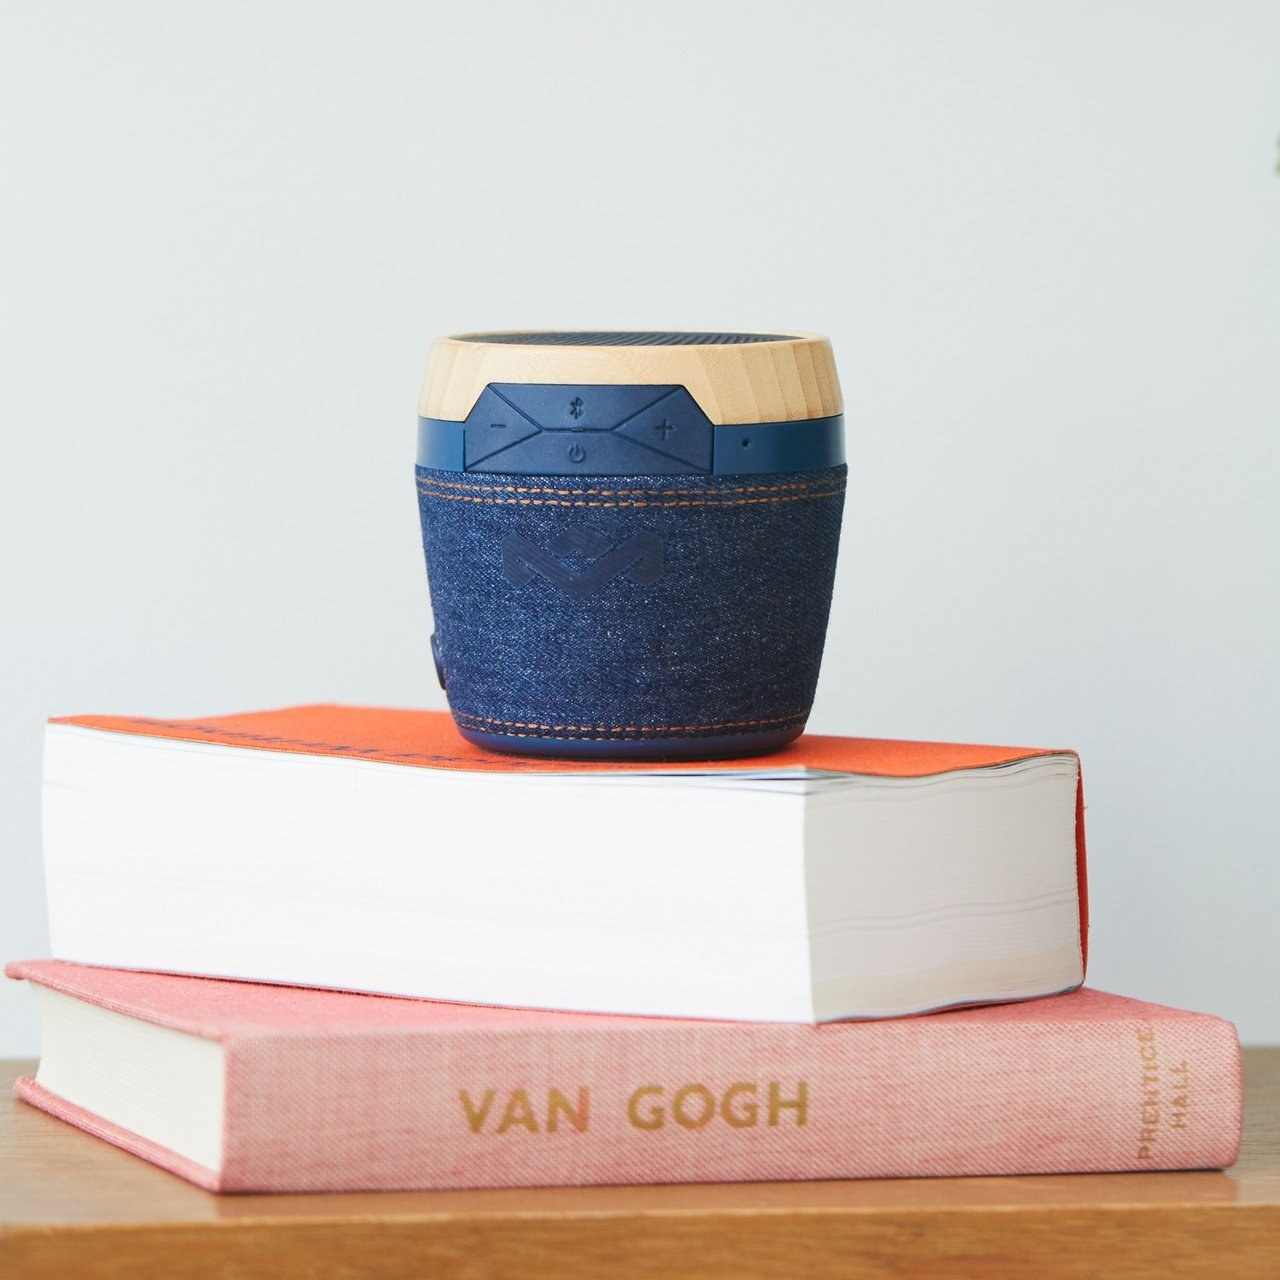 Denim-styled waterproof Bluetooth speaker on top of books